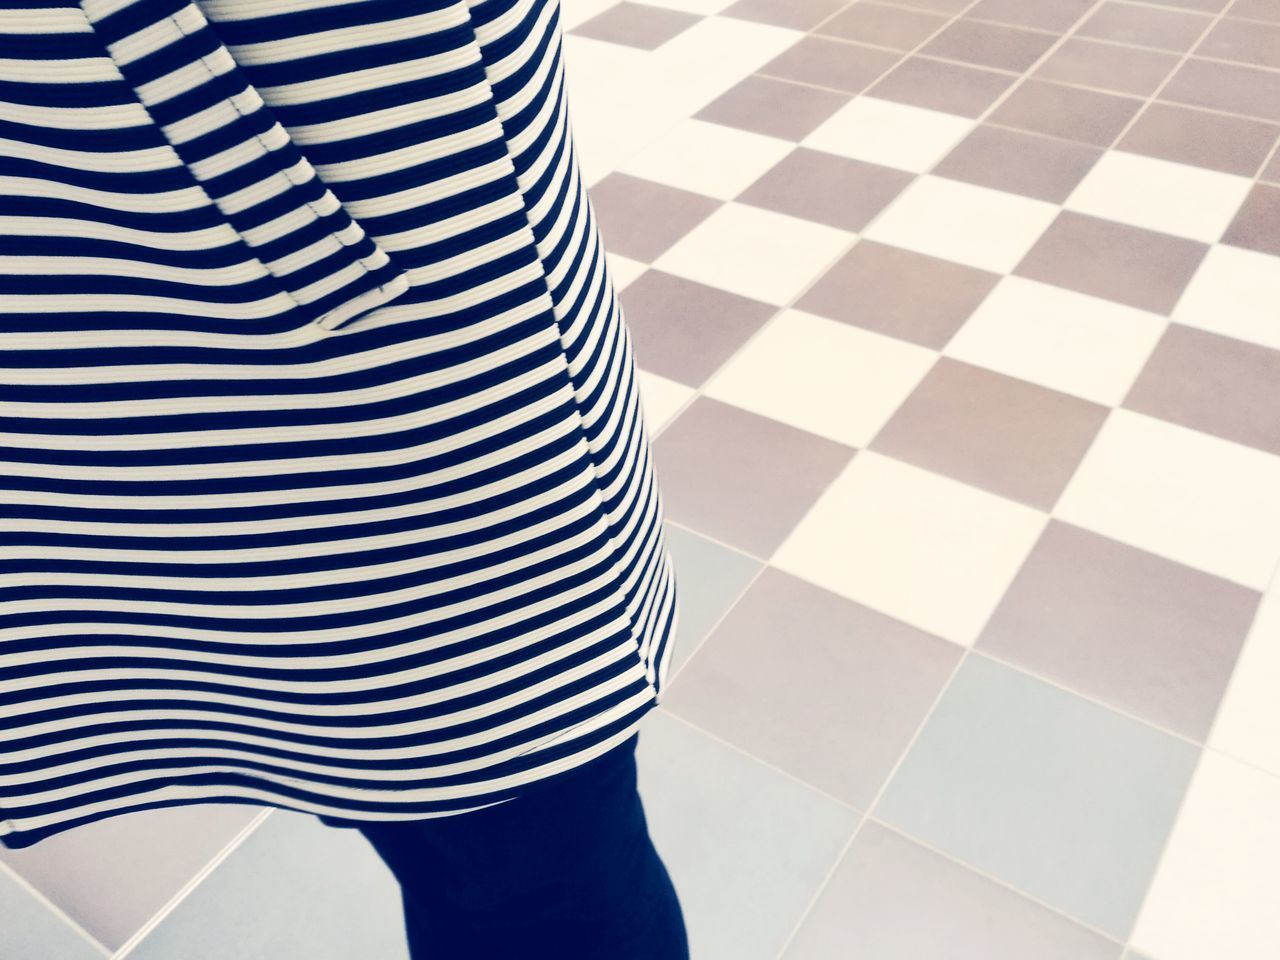 Pattern Striped White Color Backgrounds Indoors  No People Close-up Day Fashion Today's Hot Look Volkshochschule Hannover HuaweiP9 People Clothes Coat Mosaic Woman Adult One Woman Only Women Only Women Welcome To Black The Street Photographer - 2017 EyeEm Awards